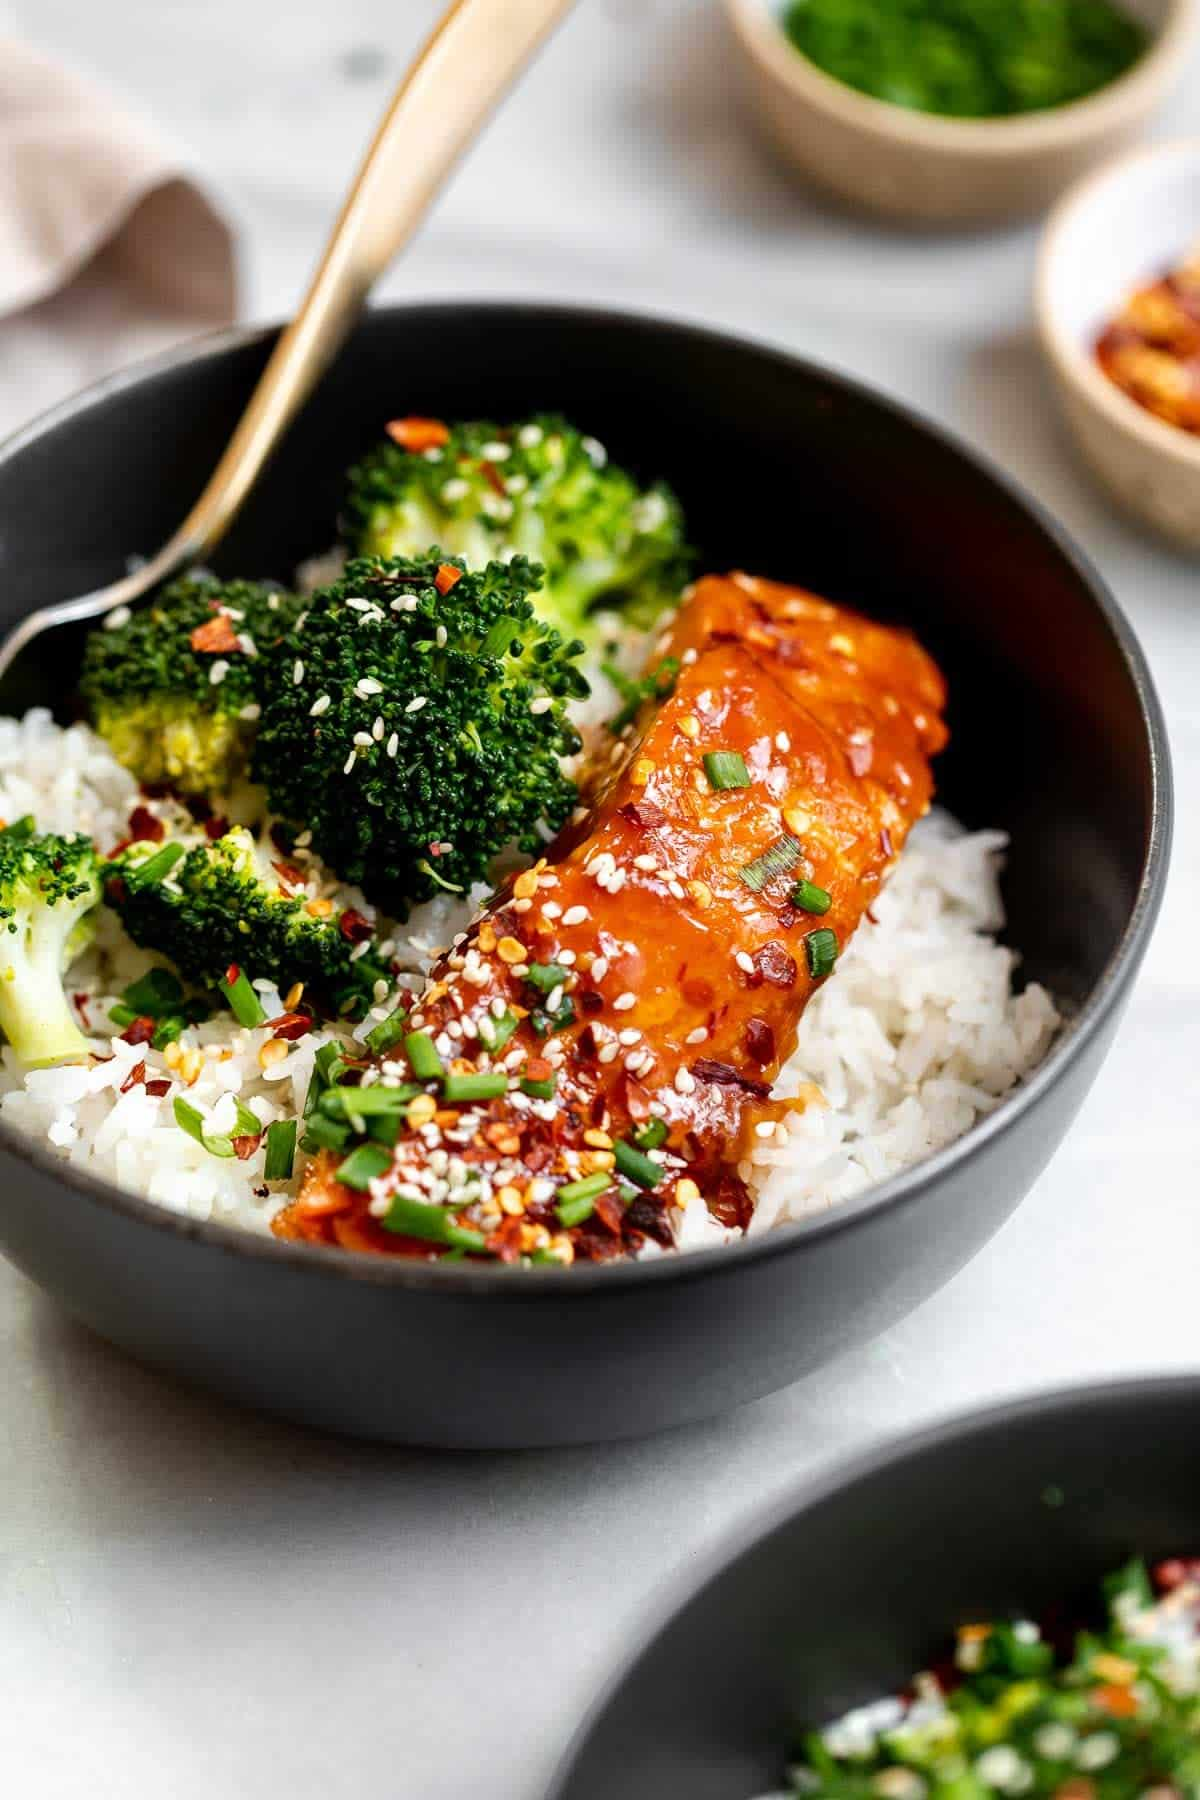 Orange salmon in a dark bowl with rice and broccoli.